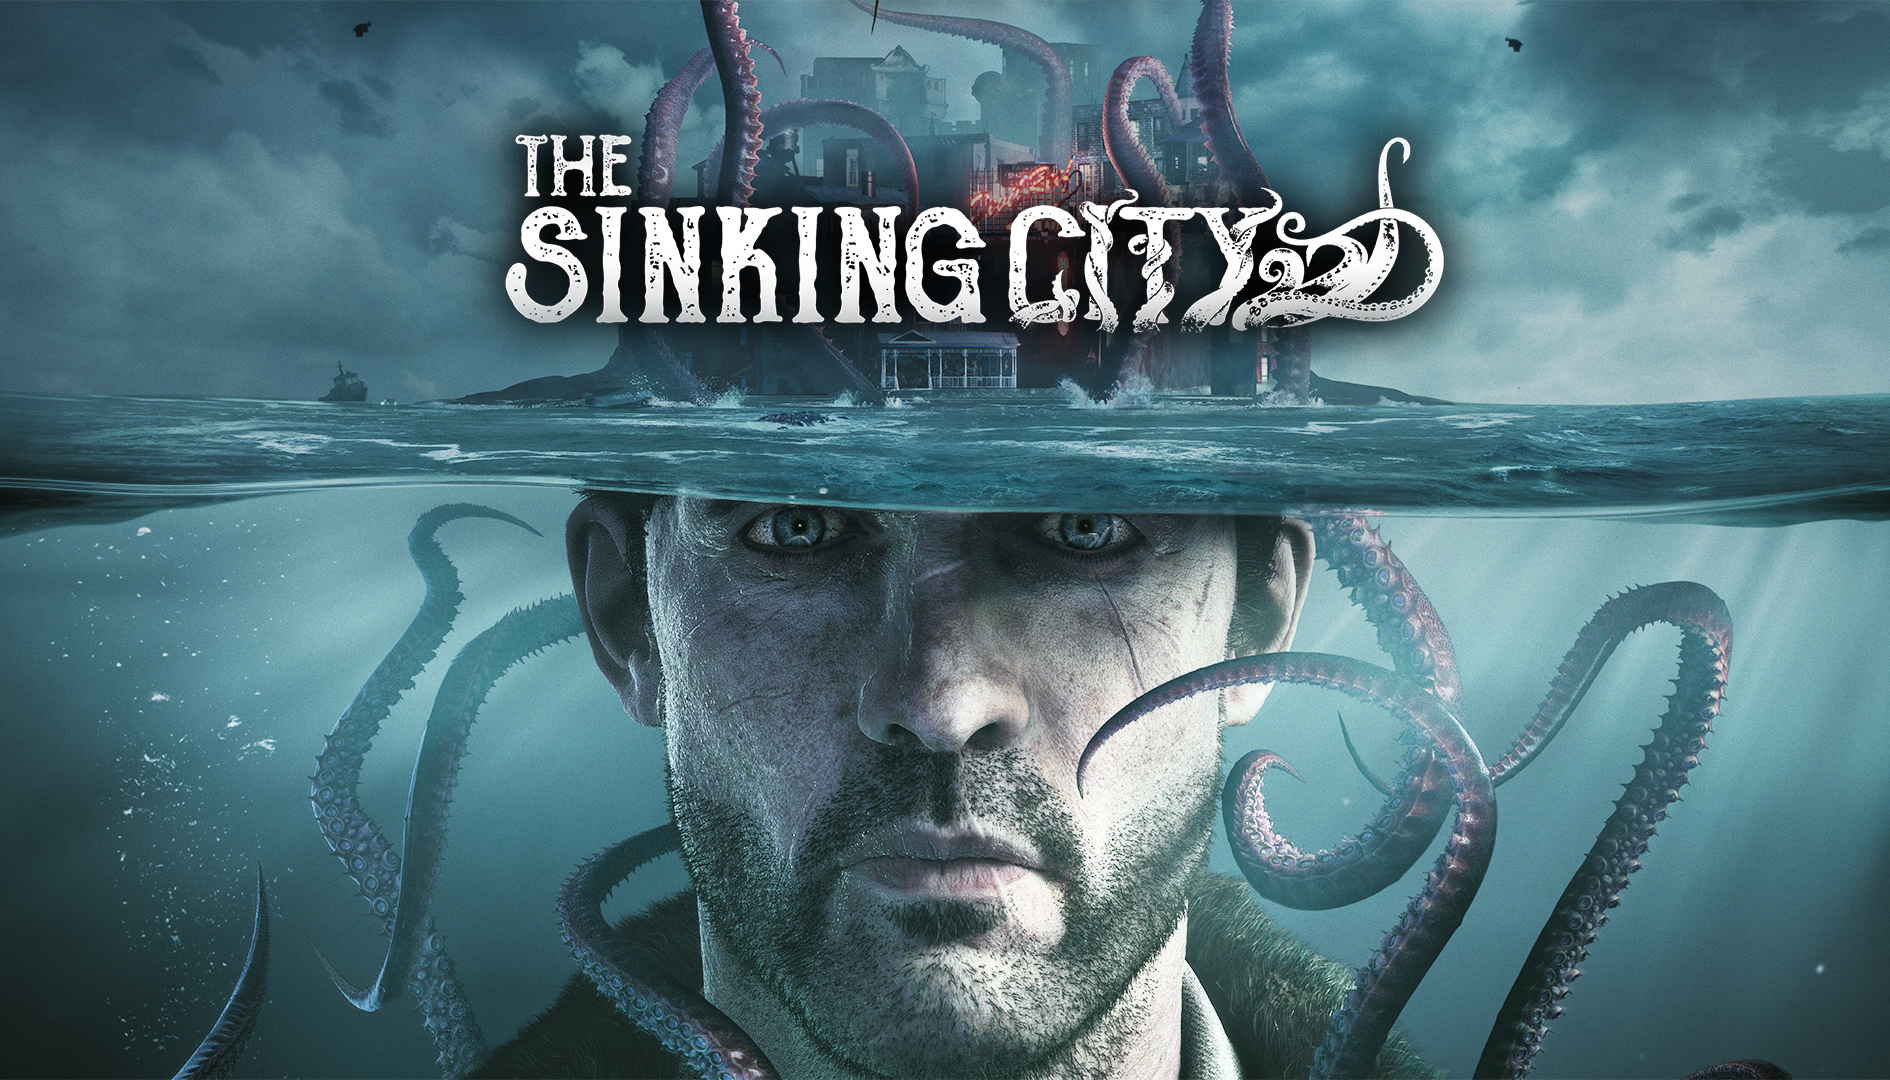 The Sinking City: accuse pesanti al publisher, rischiano 7 anni di carcere